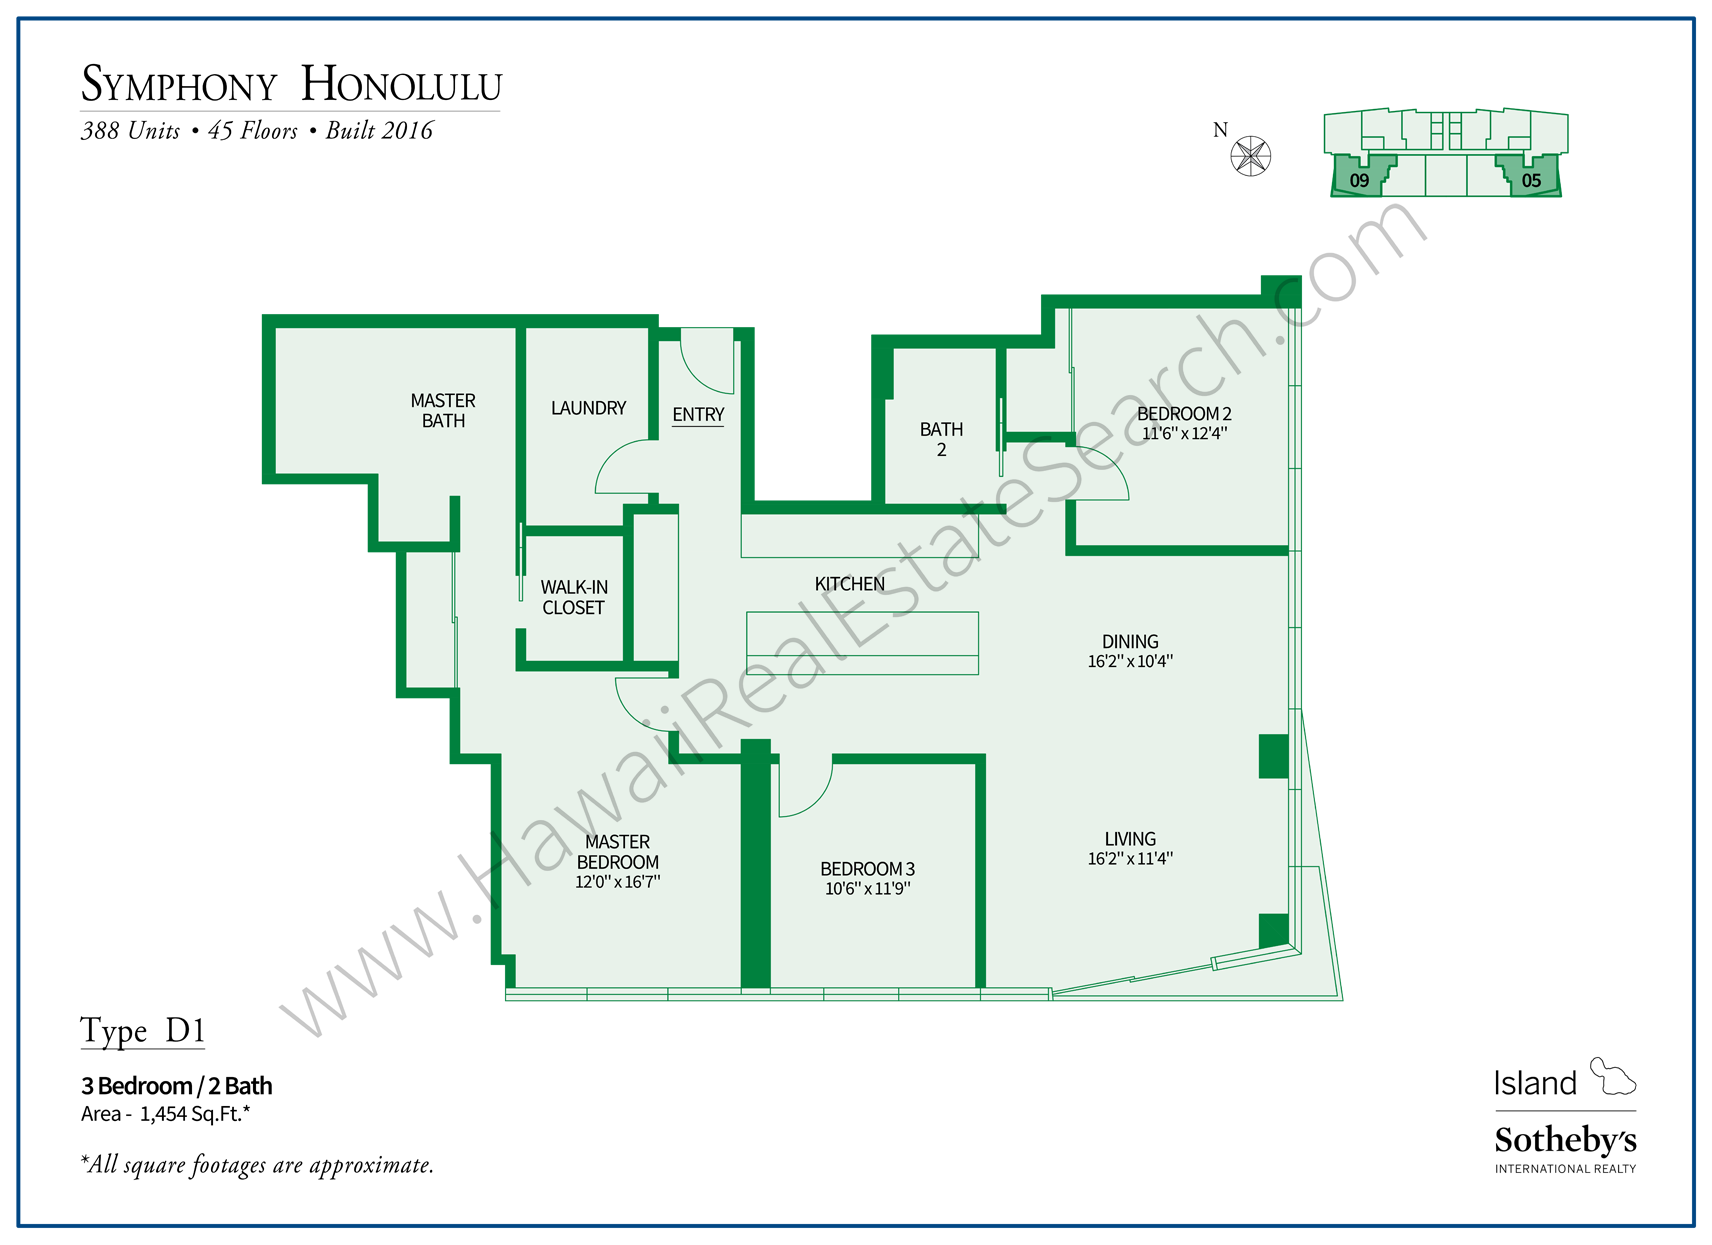 Symphony Honolulu Floor Plan D